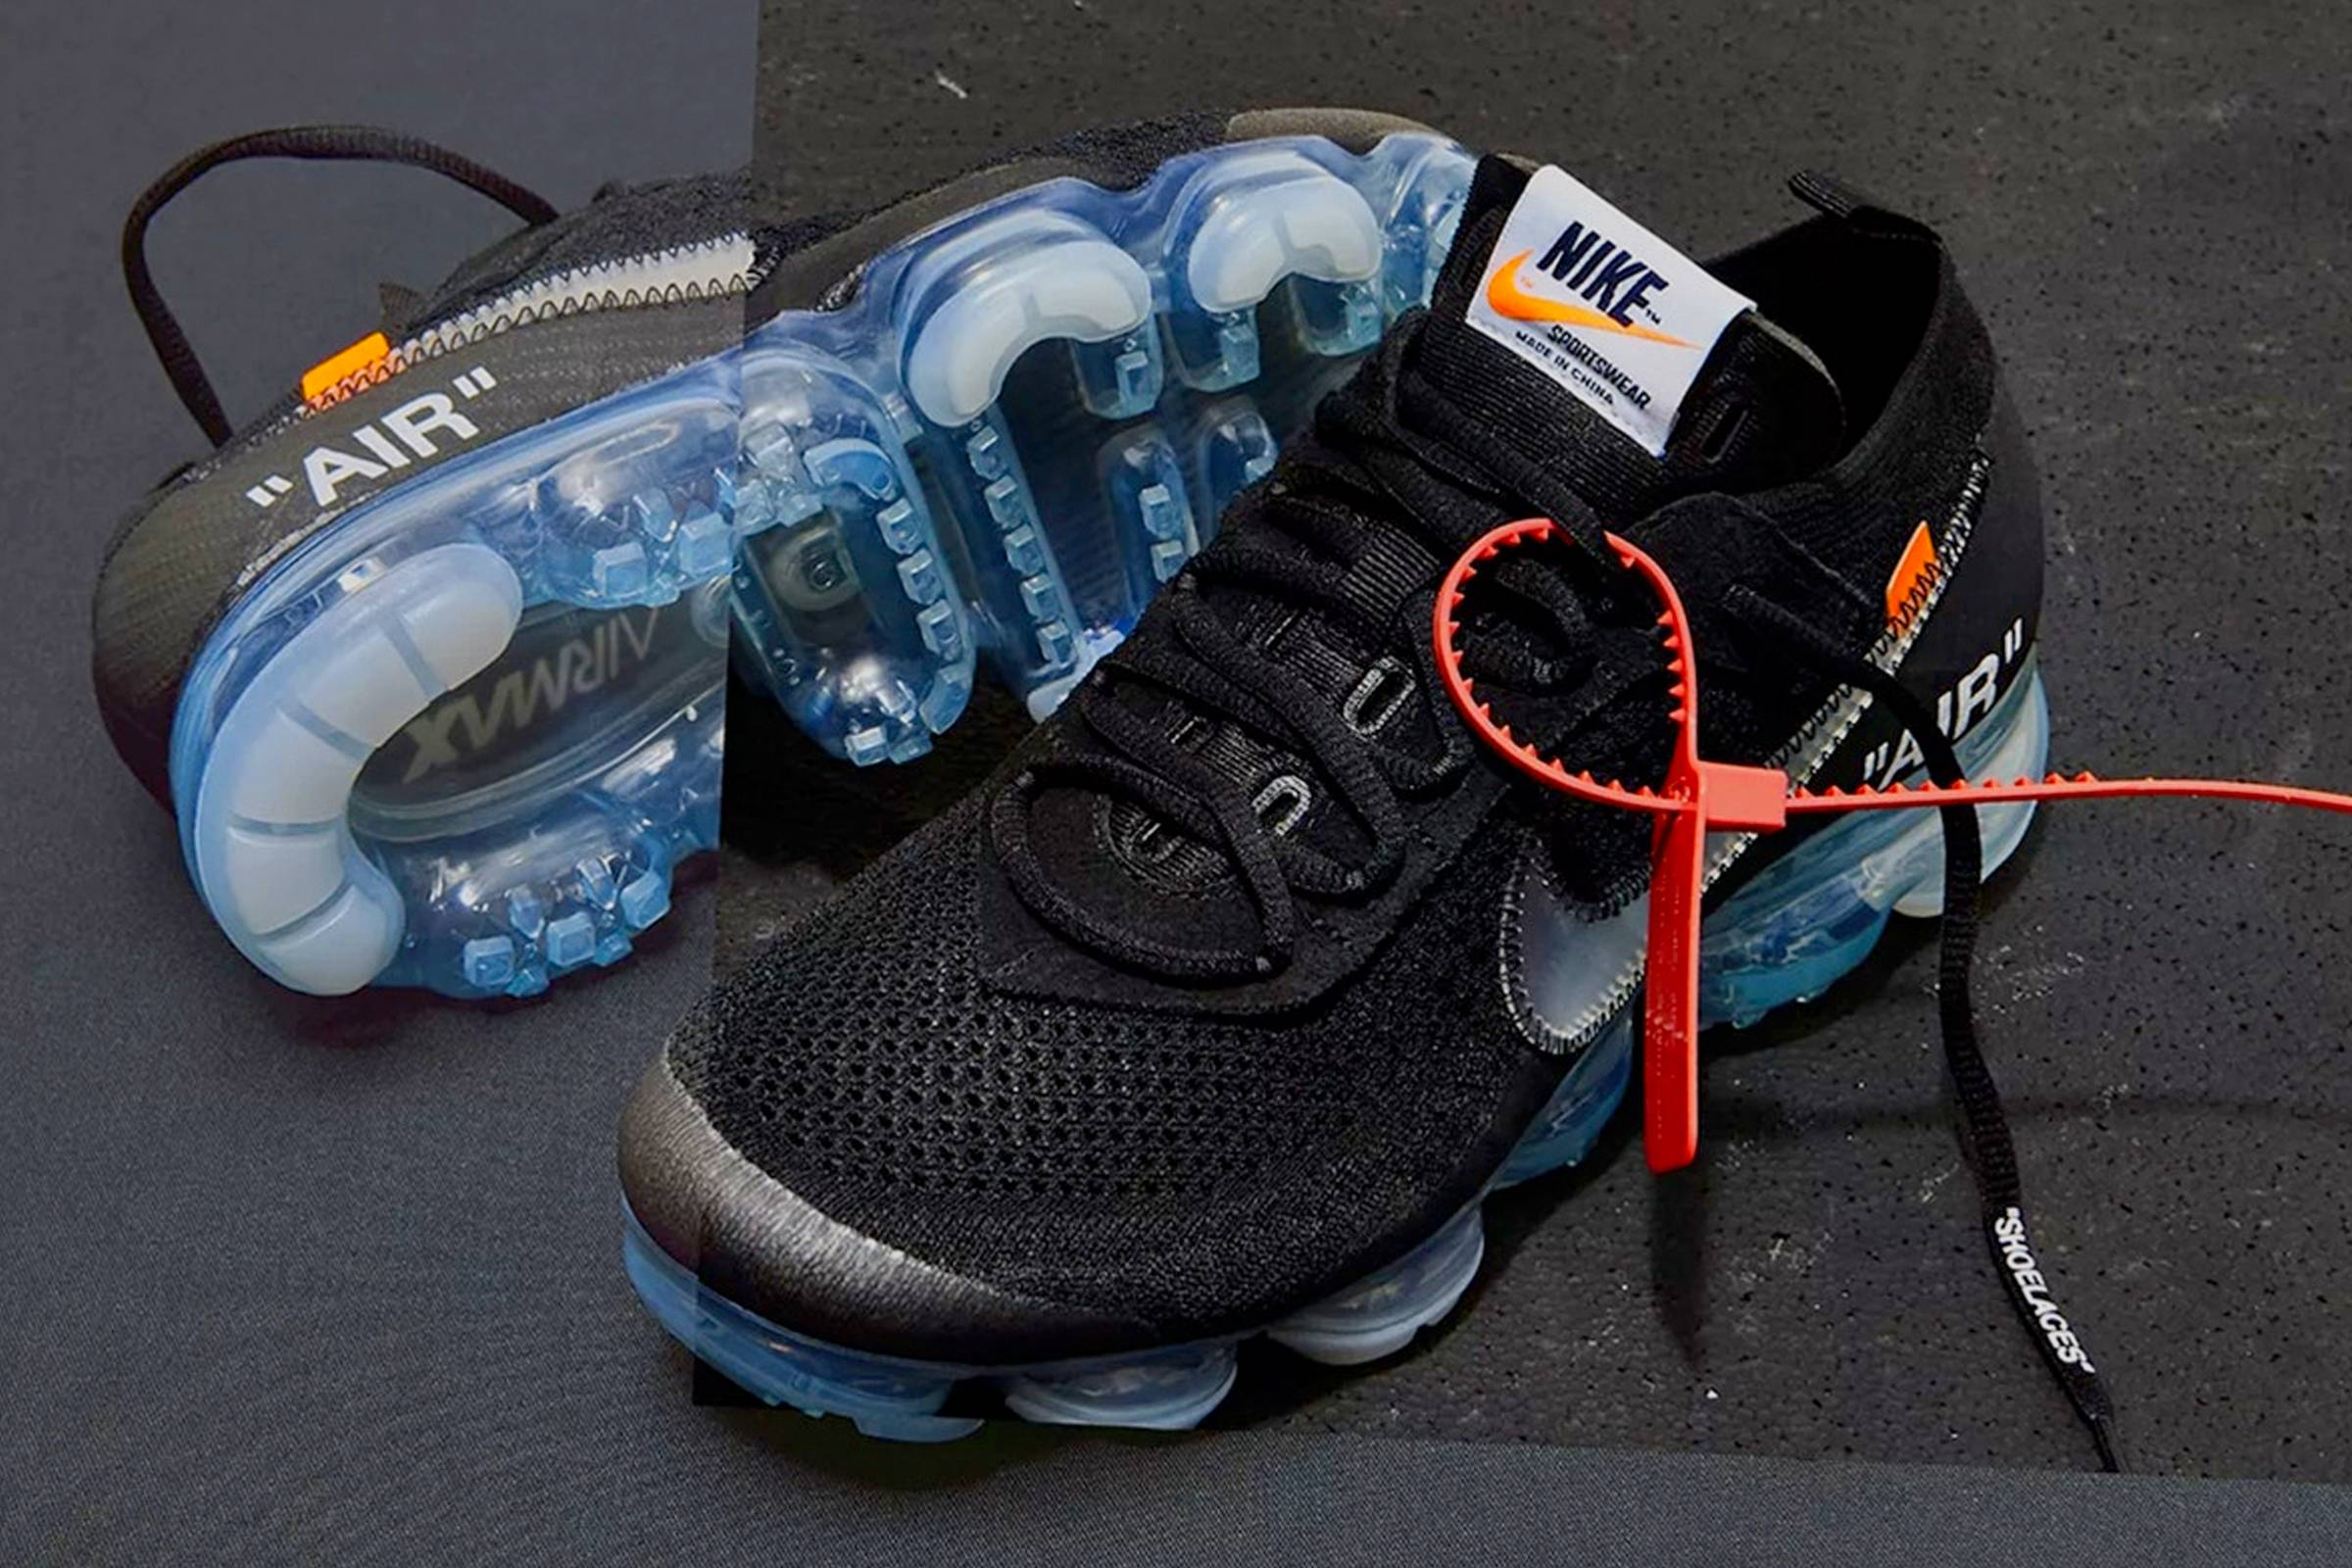 c6fa656064 Release Details for the Upcoming Off-White Nike VaporMax